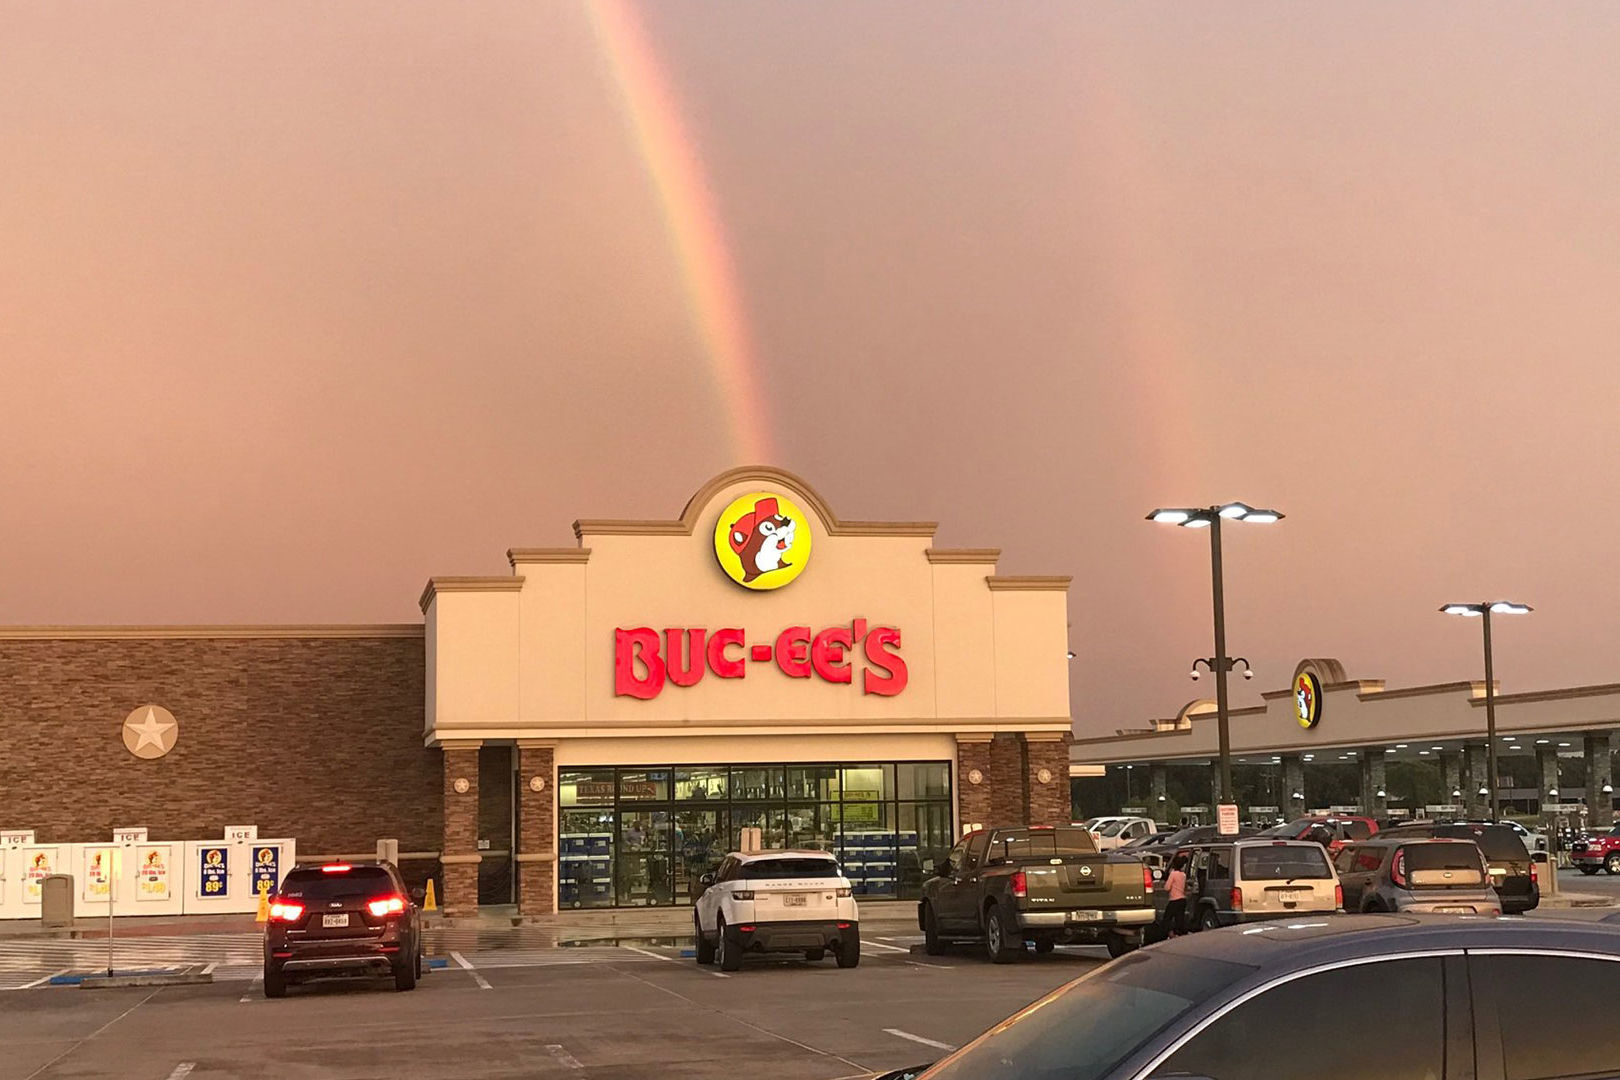 Buc-ee's Bathrooms Ranked Cleanest in the Nation for Second Year Running